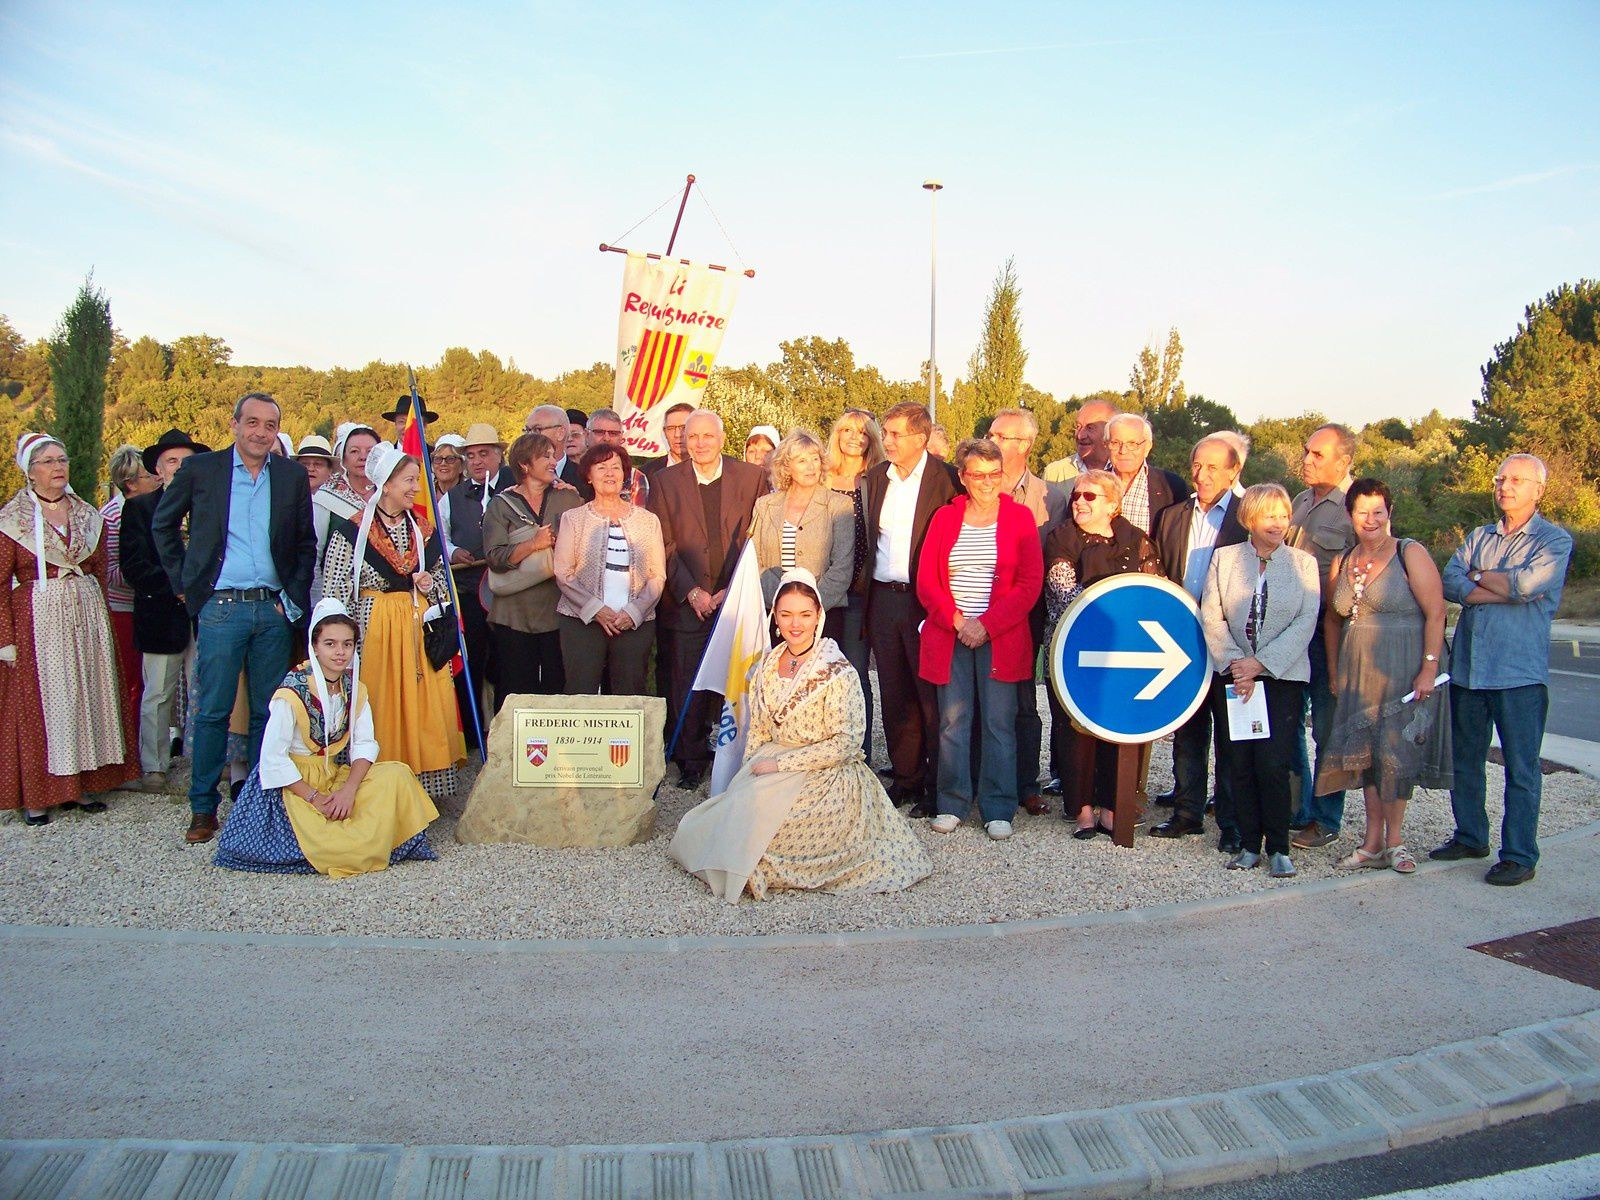 UN ROND-POINT POUR LE VILLAGE